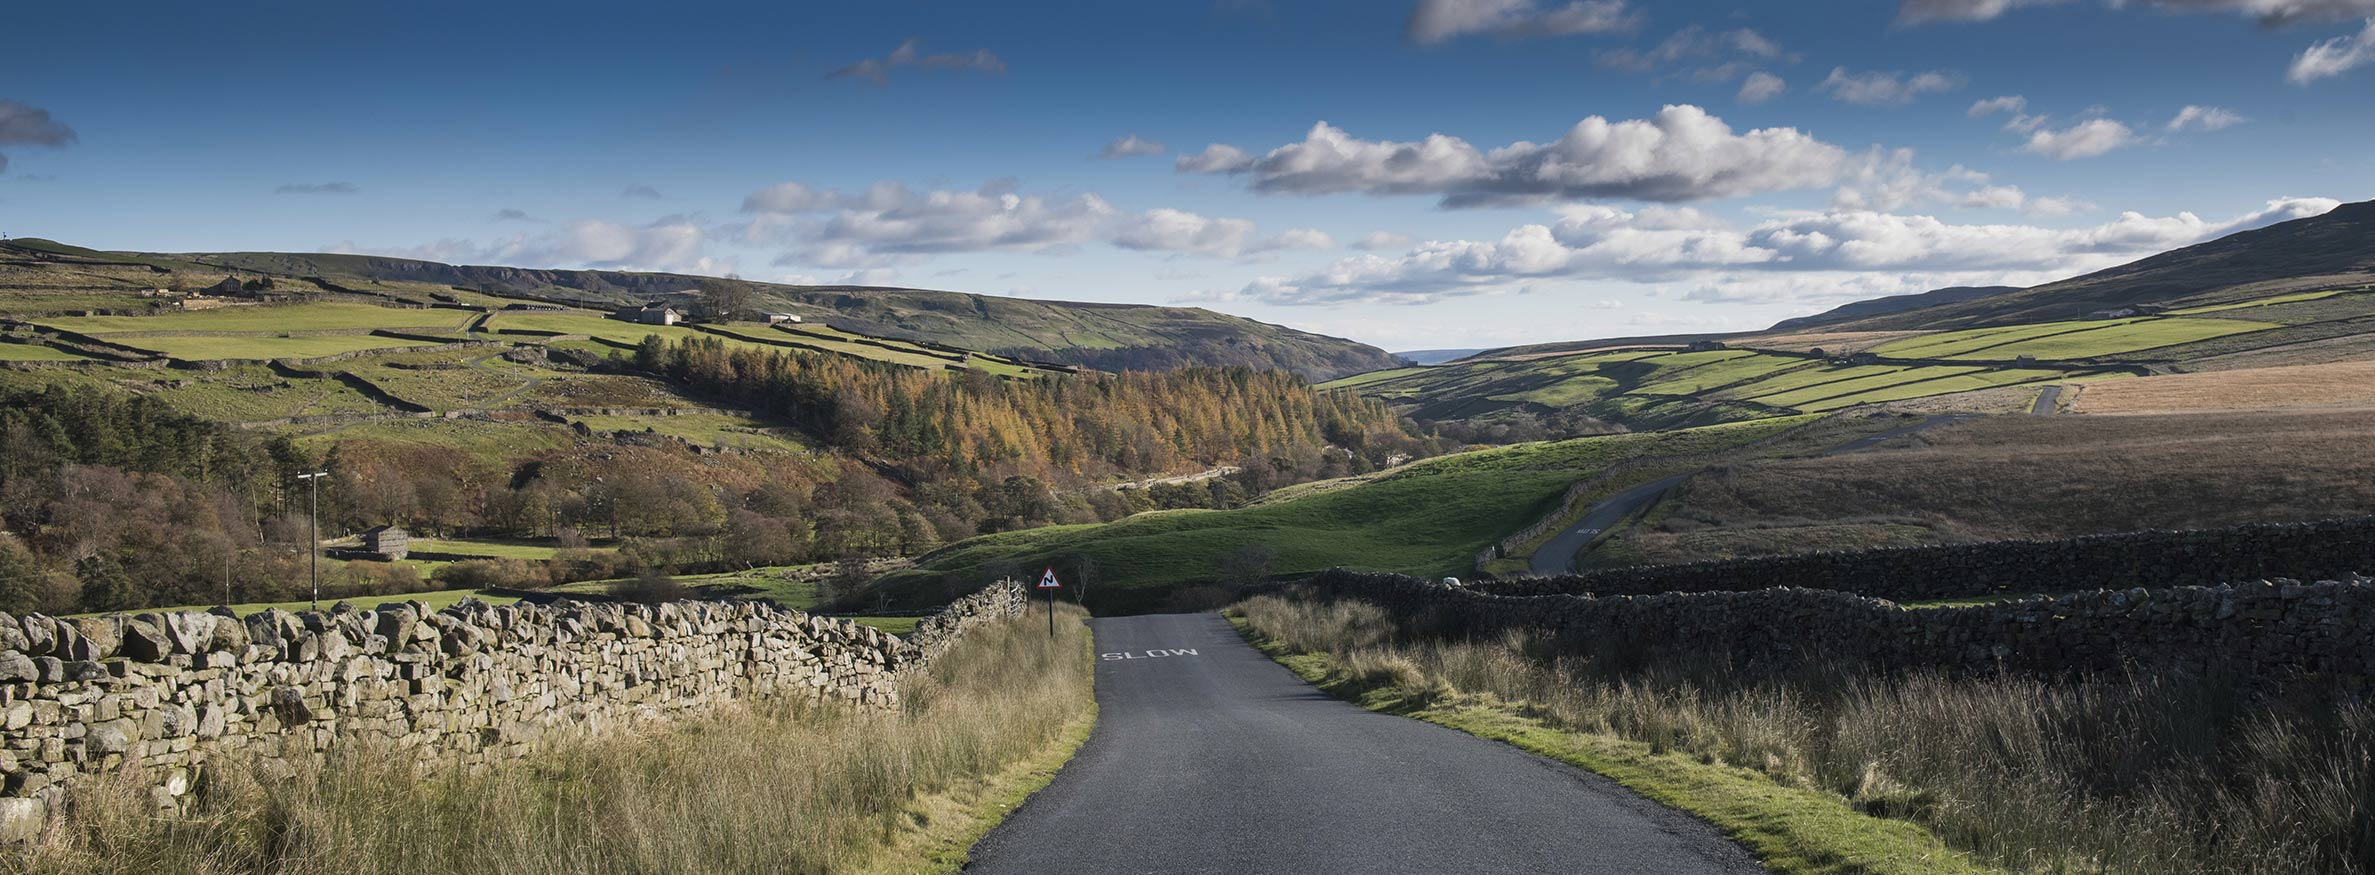 View of Arkengarthdale in rural North Yorkshire